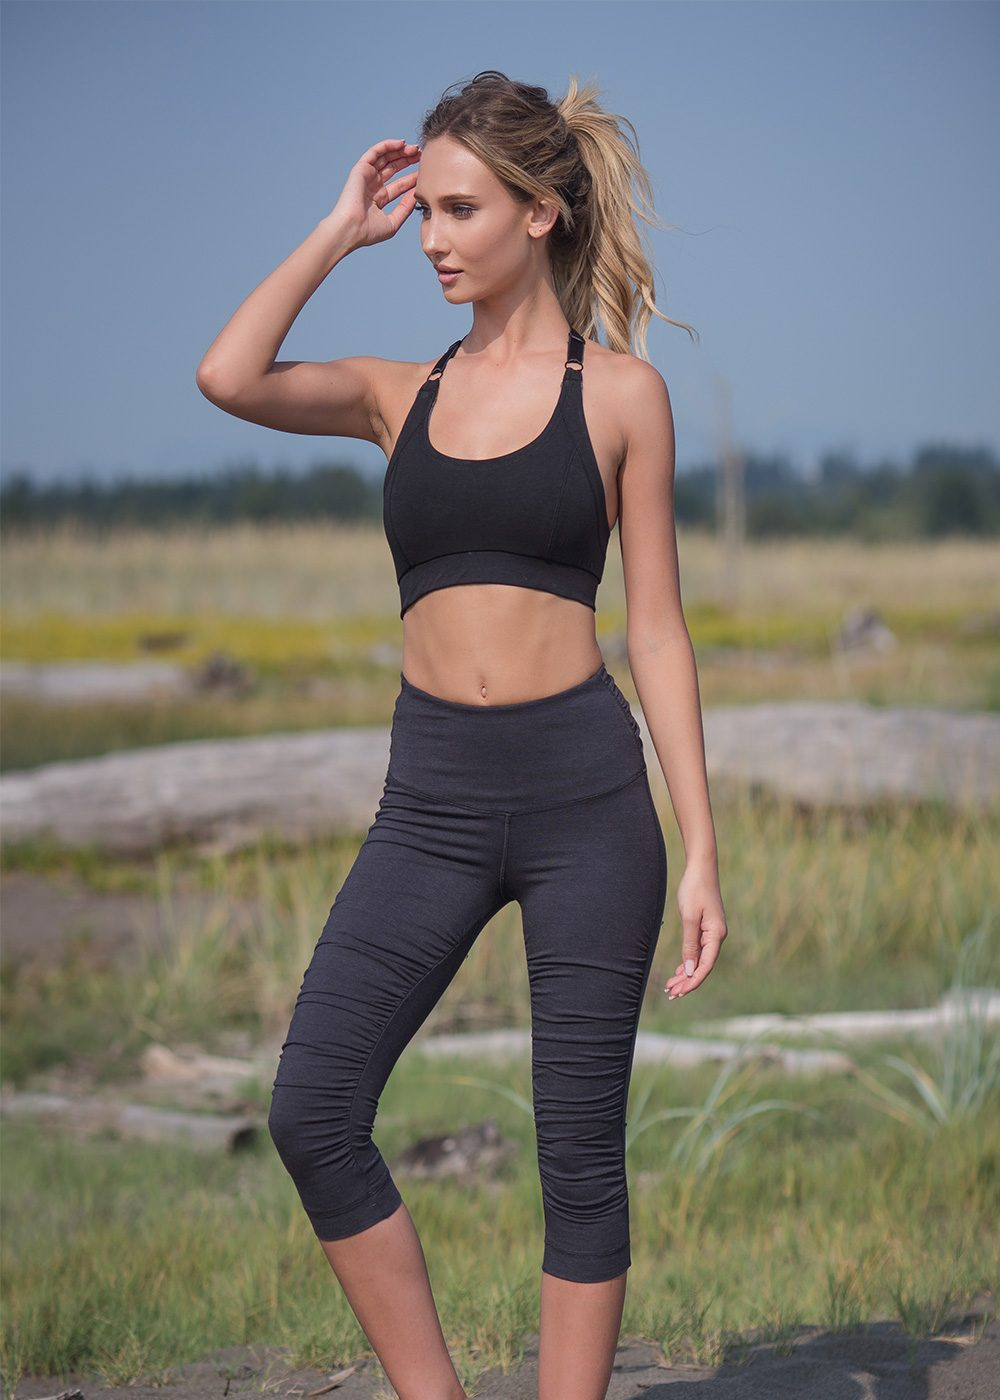 Flex Leggings in Organic Cotton & Bamboo - Nomads Hemp Wear